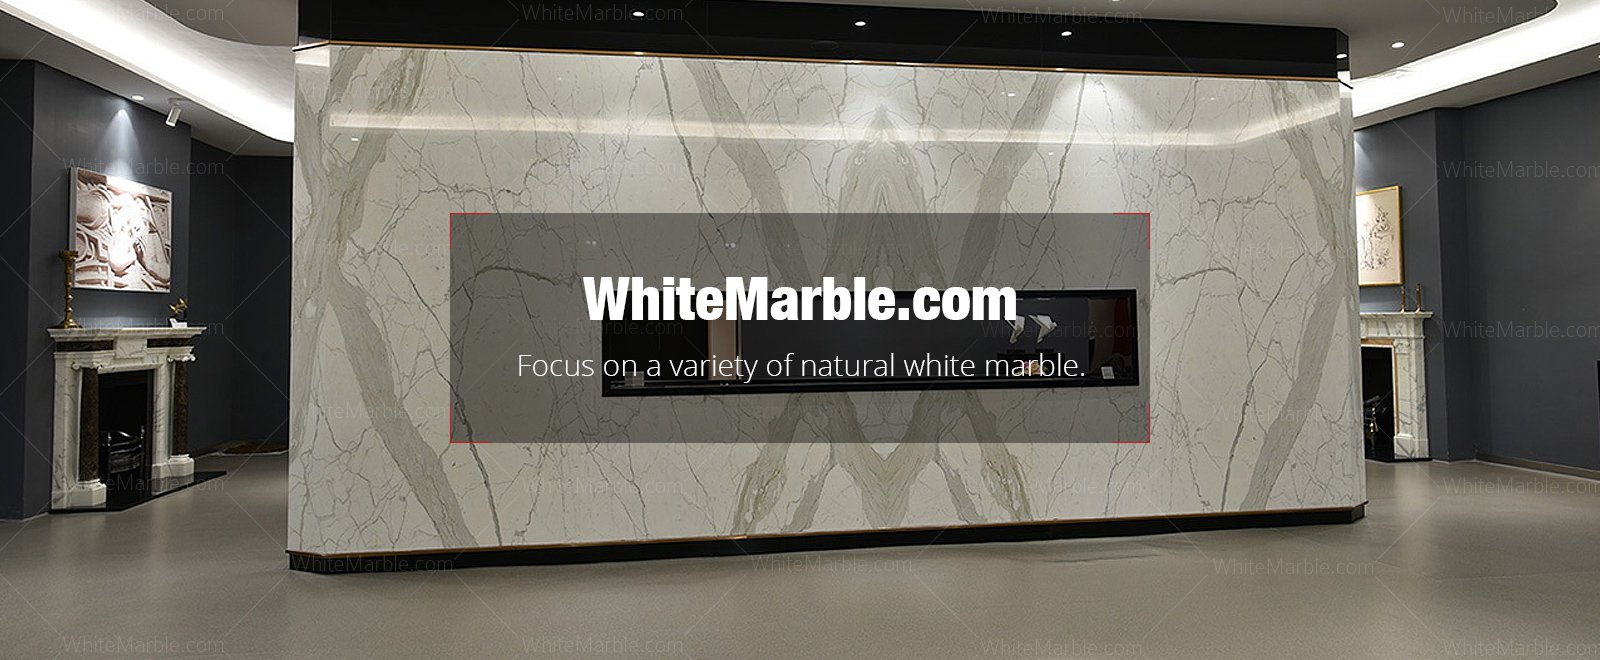 Focus on a variety of natural white marble